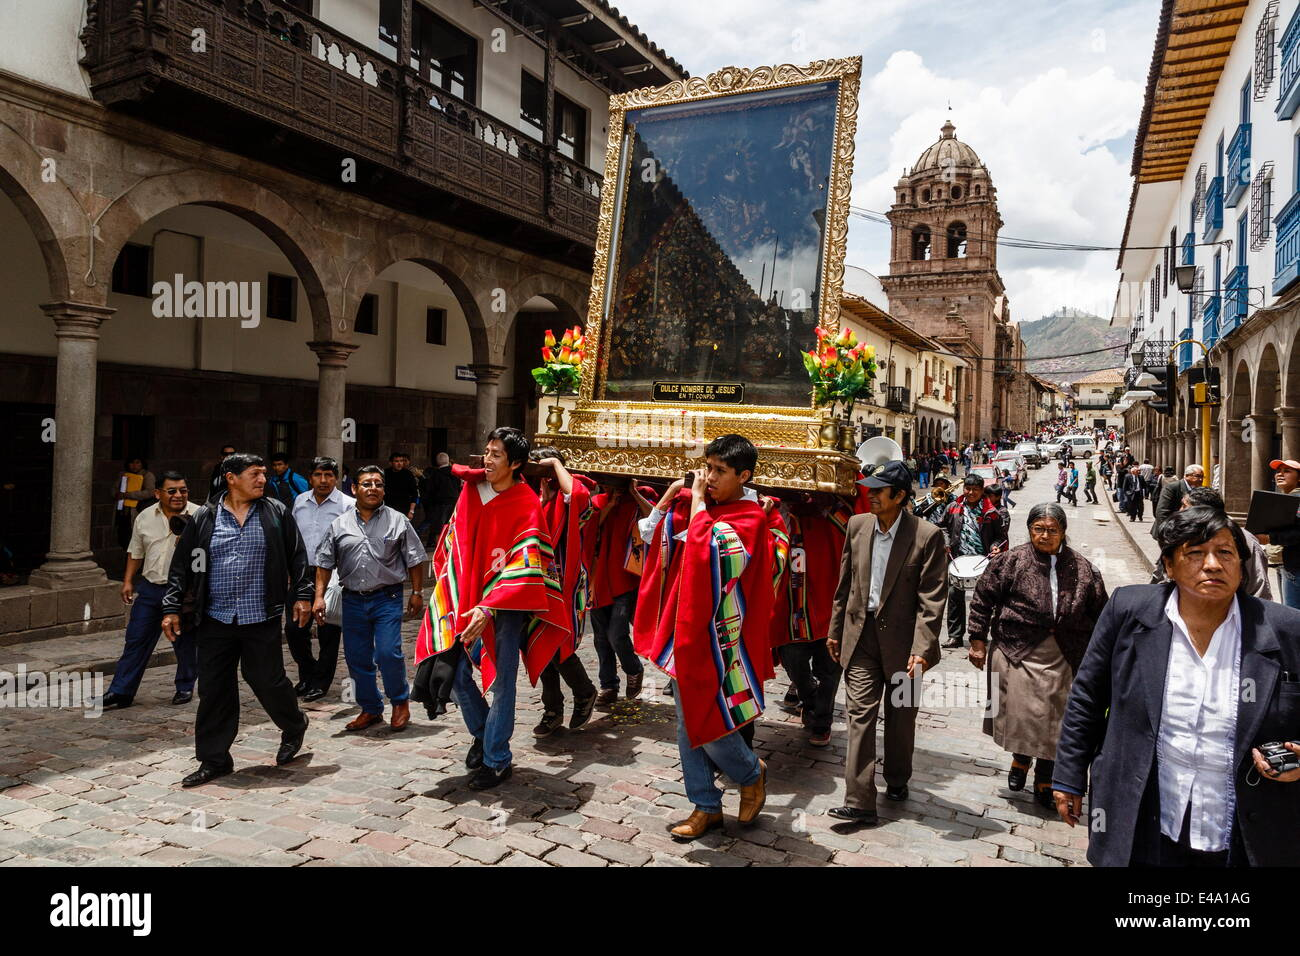 Une procession religieuse, Cuzco, Pérou, Amérique du Sud Photo Stock